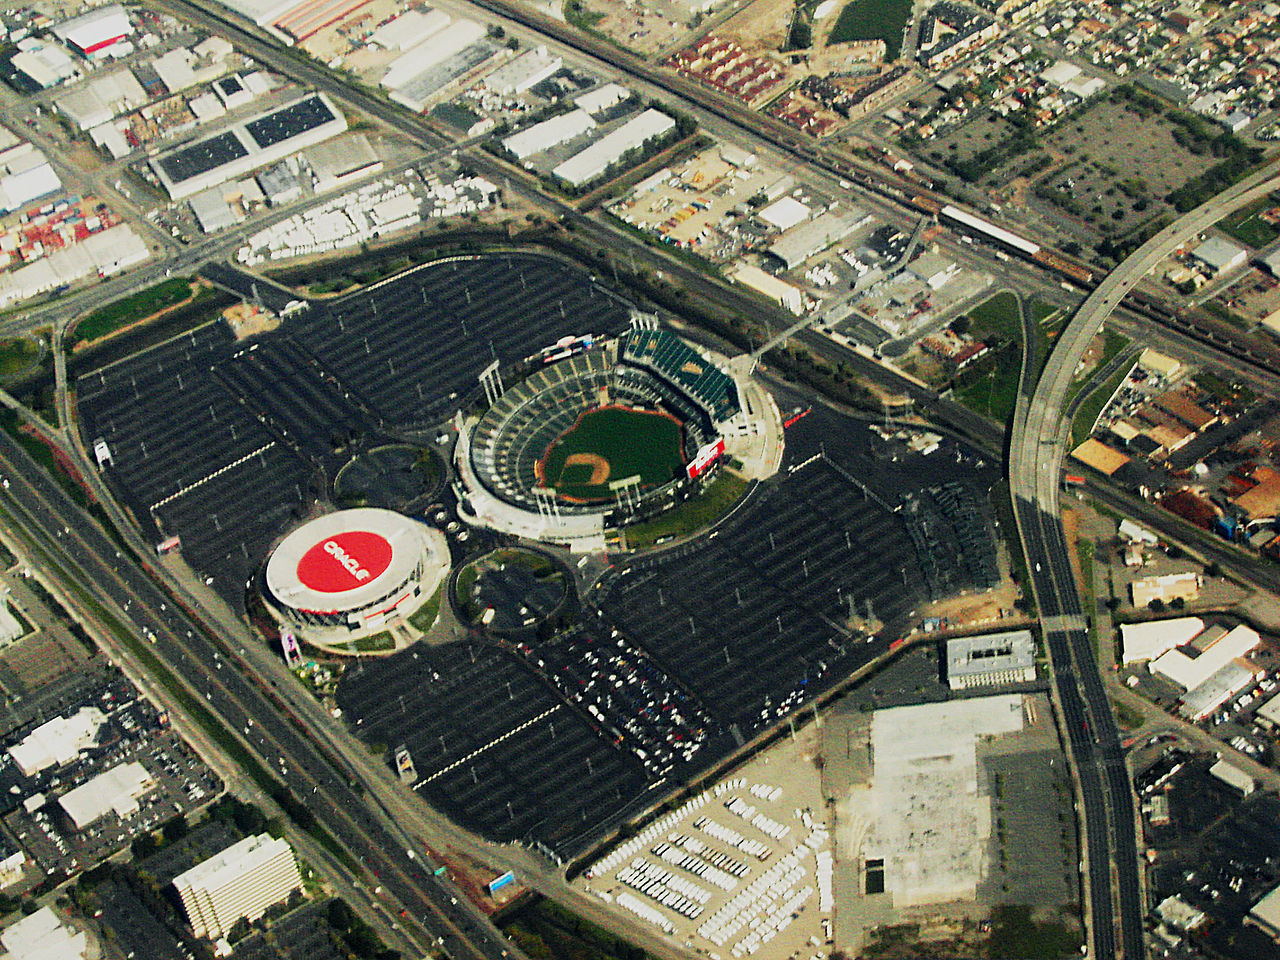 State warriors oracle arena and oakland alameda county coliseum - File Oracle Stadium From Sfo Cc Jpg